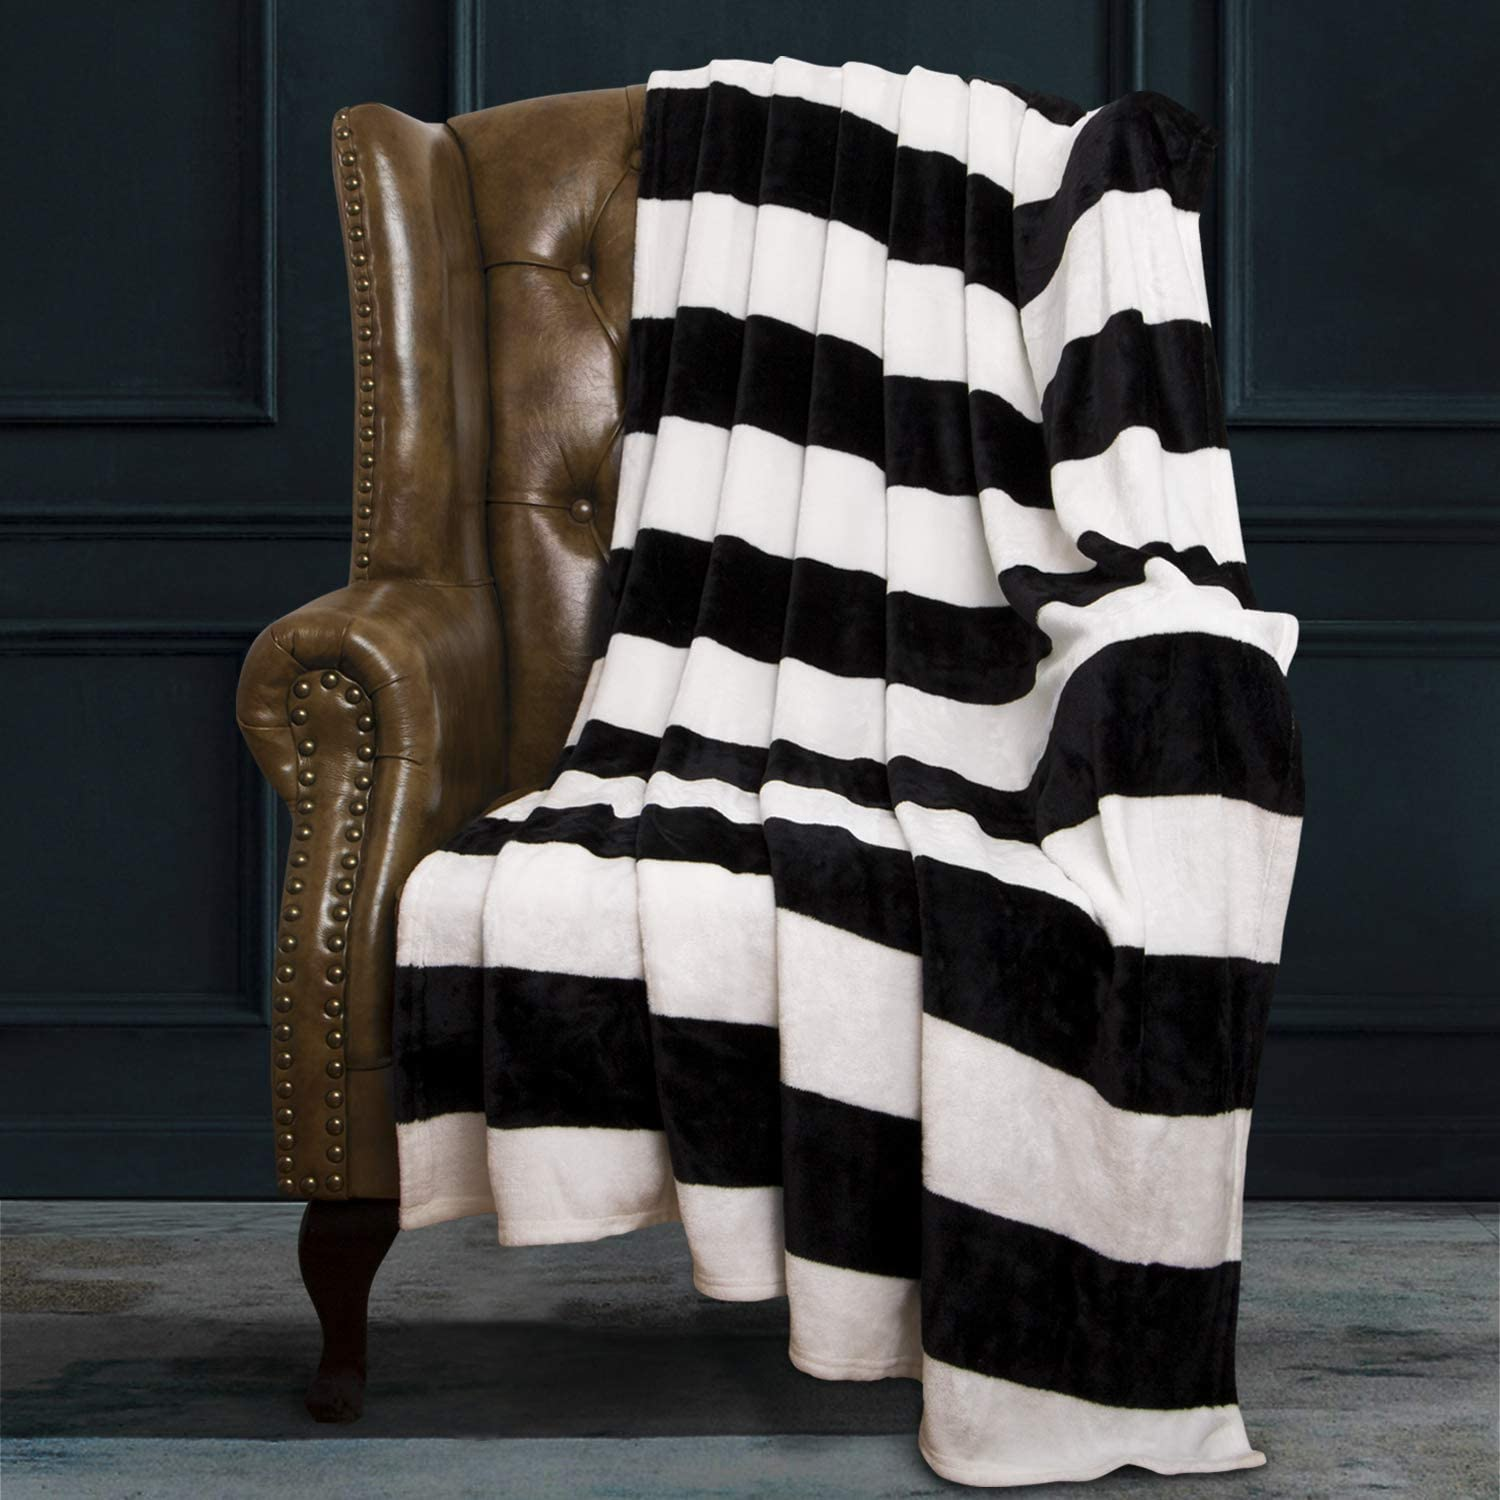 Amazon Com Ntbay Flannel Throw Blanket Super Soft With Black And White Stripe 51 X 68 Home Kitchen